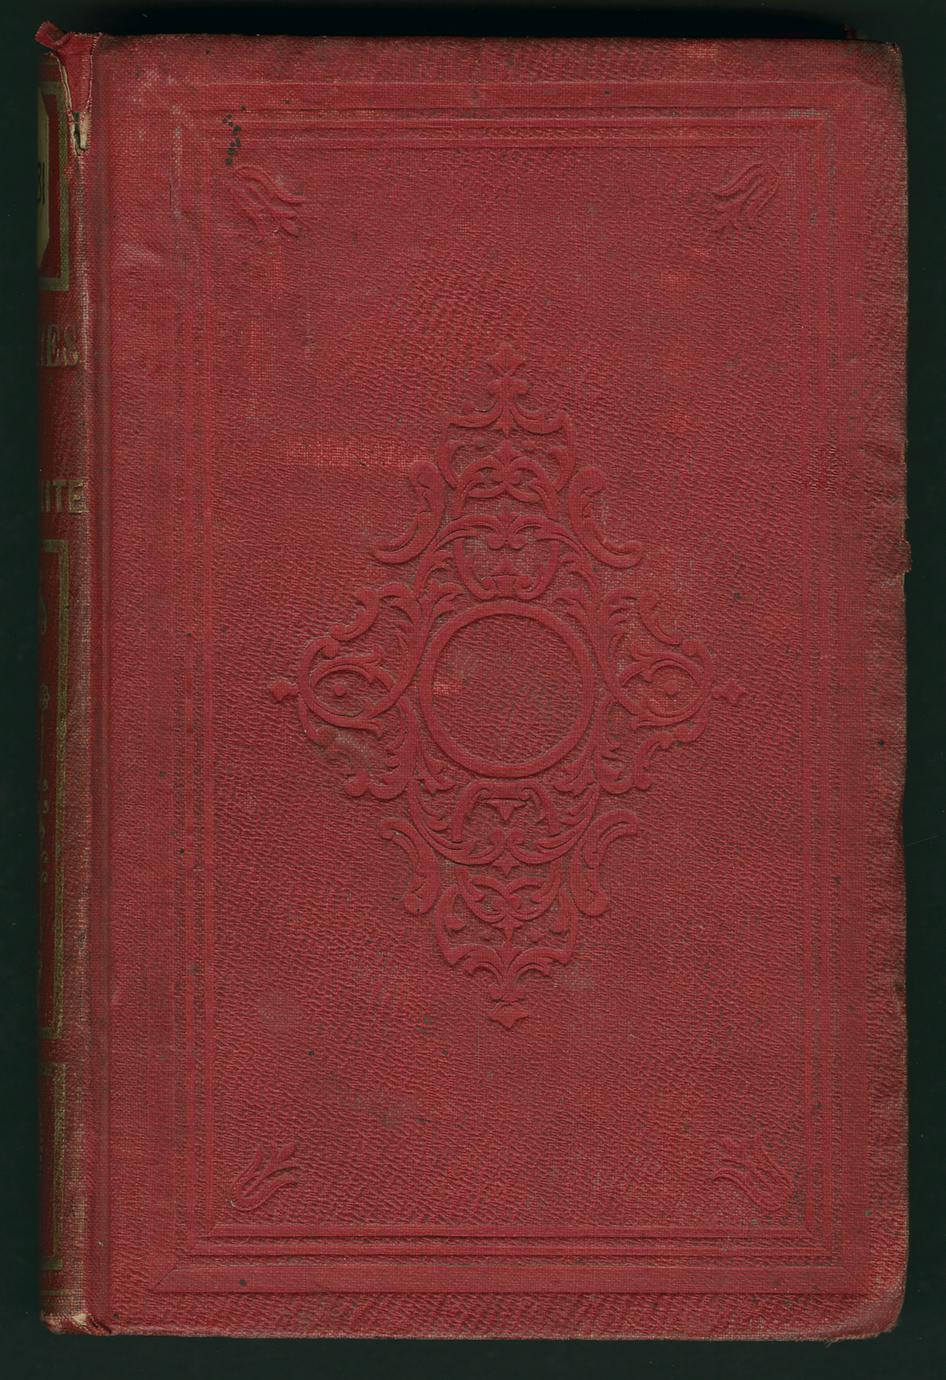 The beauties of Henry Kirke White : consisting of selections from his poetry and prose (1 of 2)